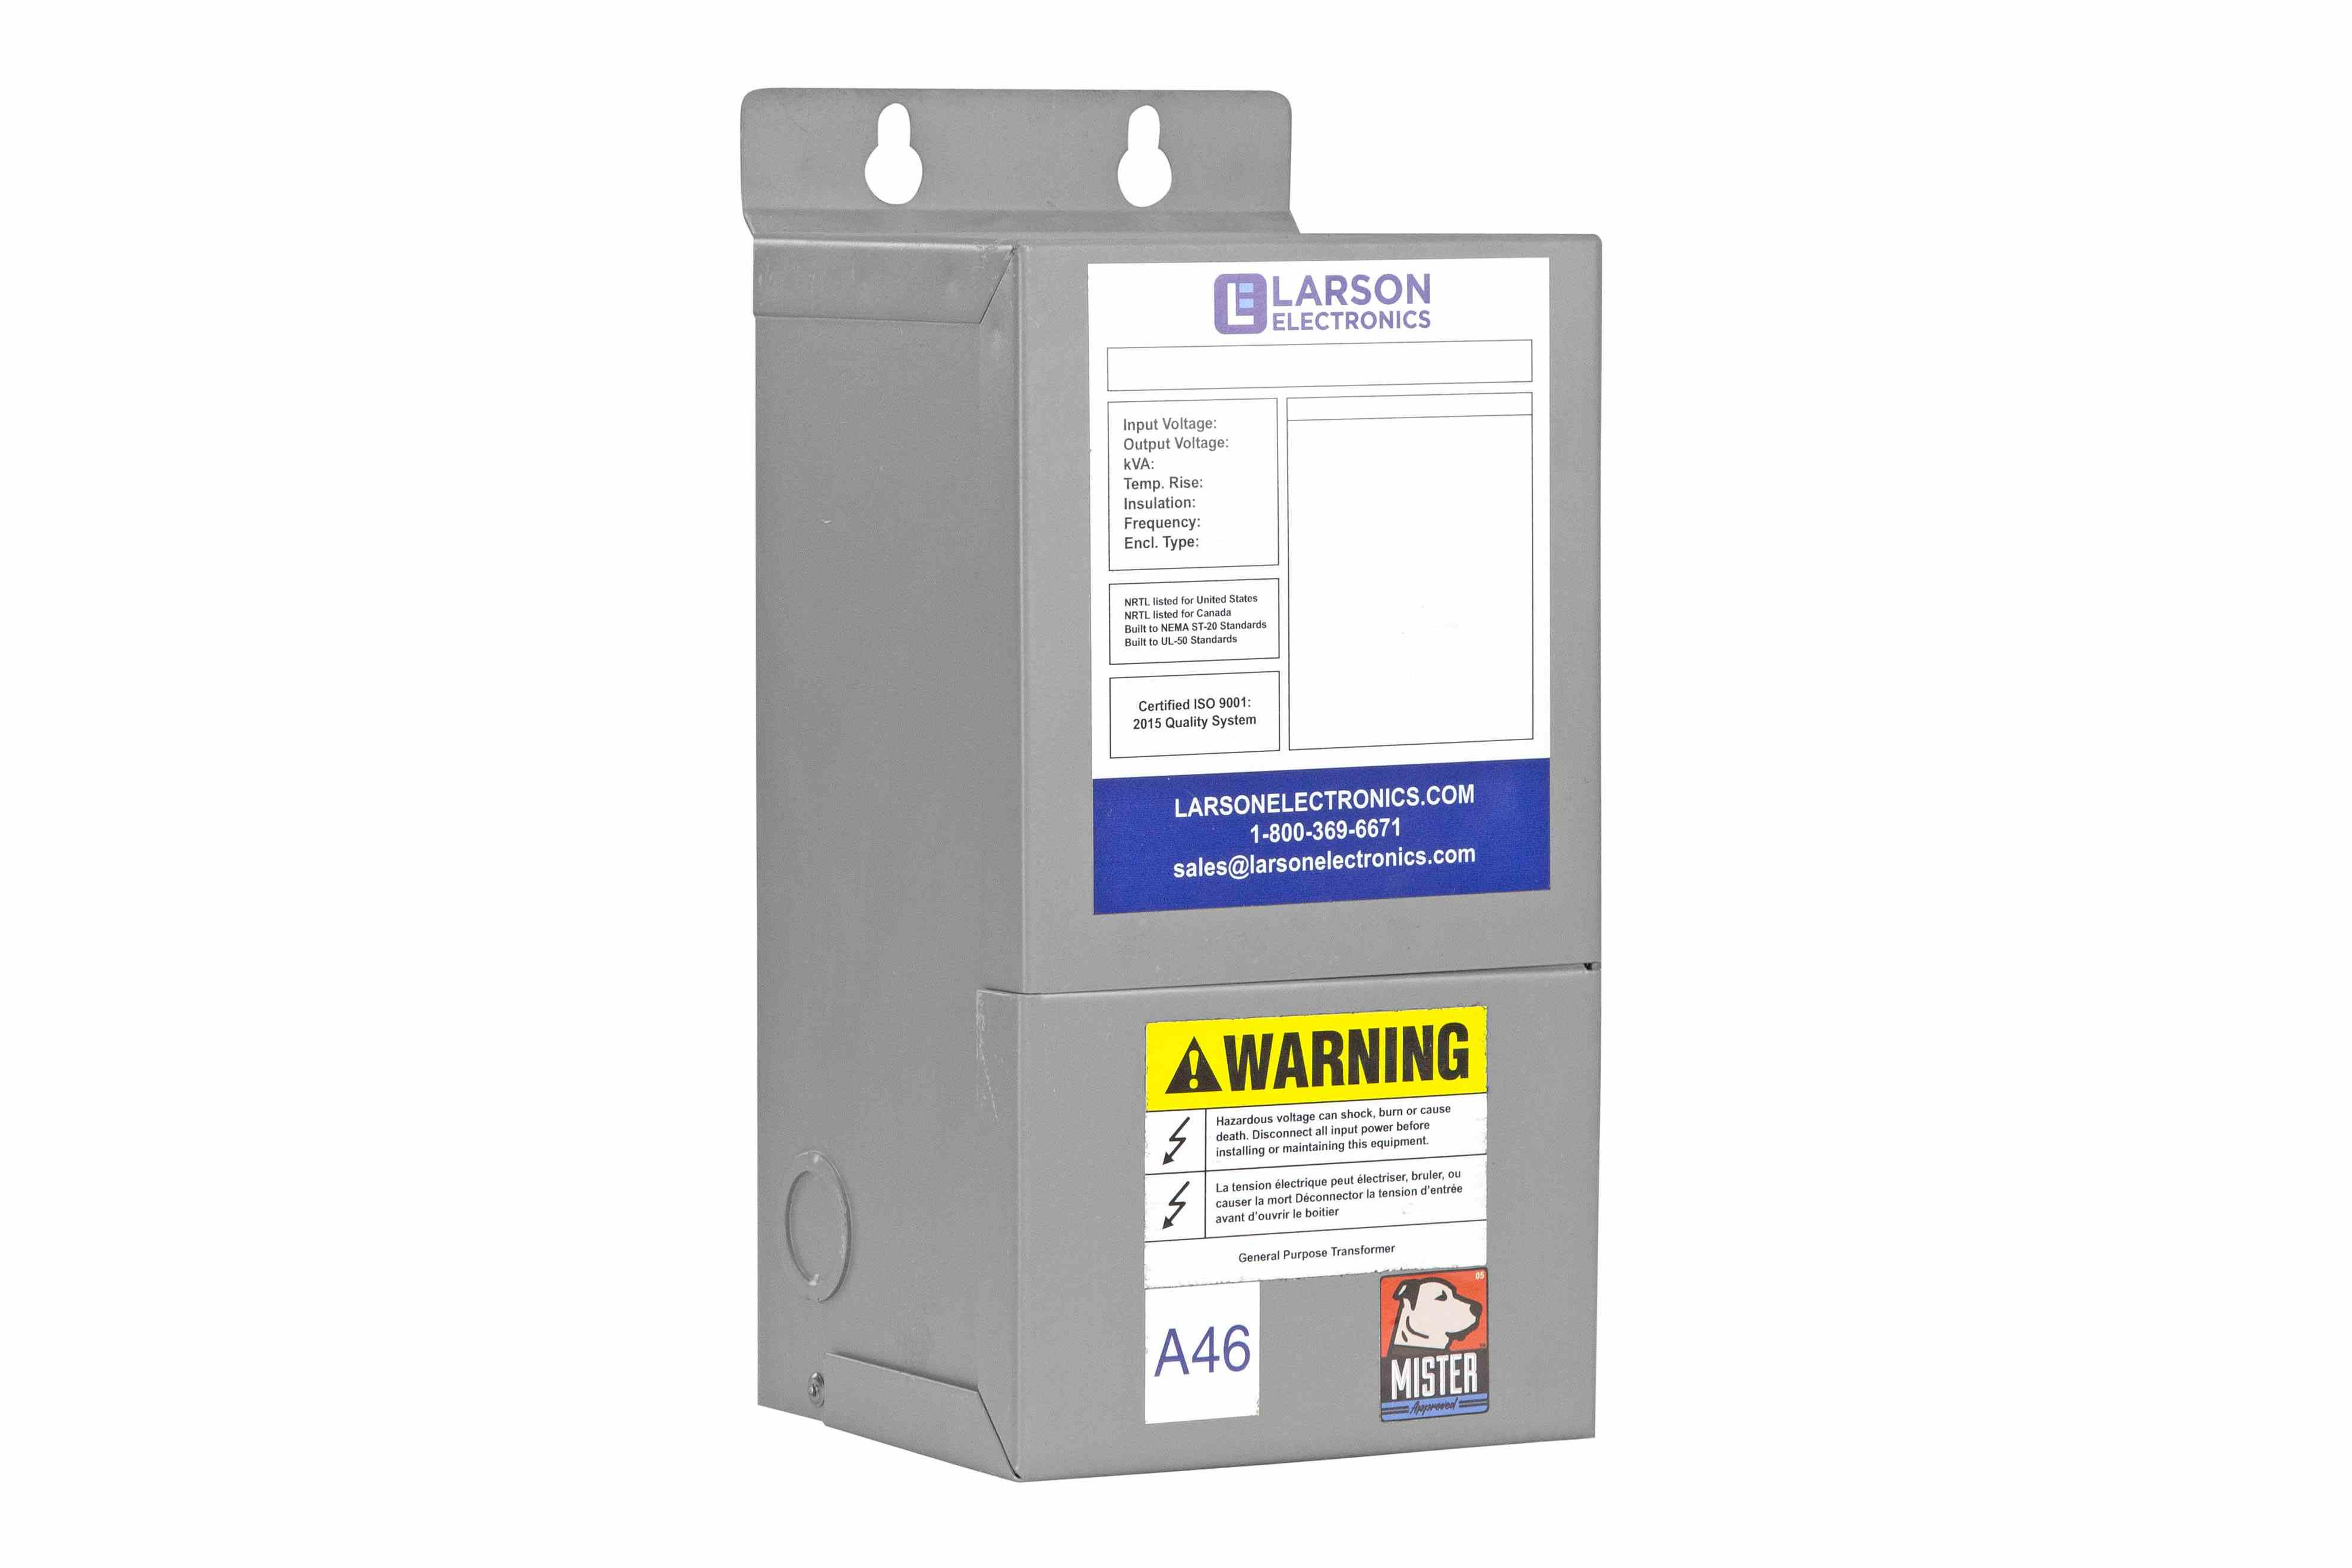 1 Phase Buck & Boost Step-Down Transformer - 220V Primary - 200V Secondary  at 16 Amps - 50/60Hz